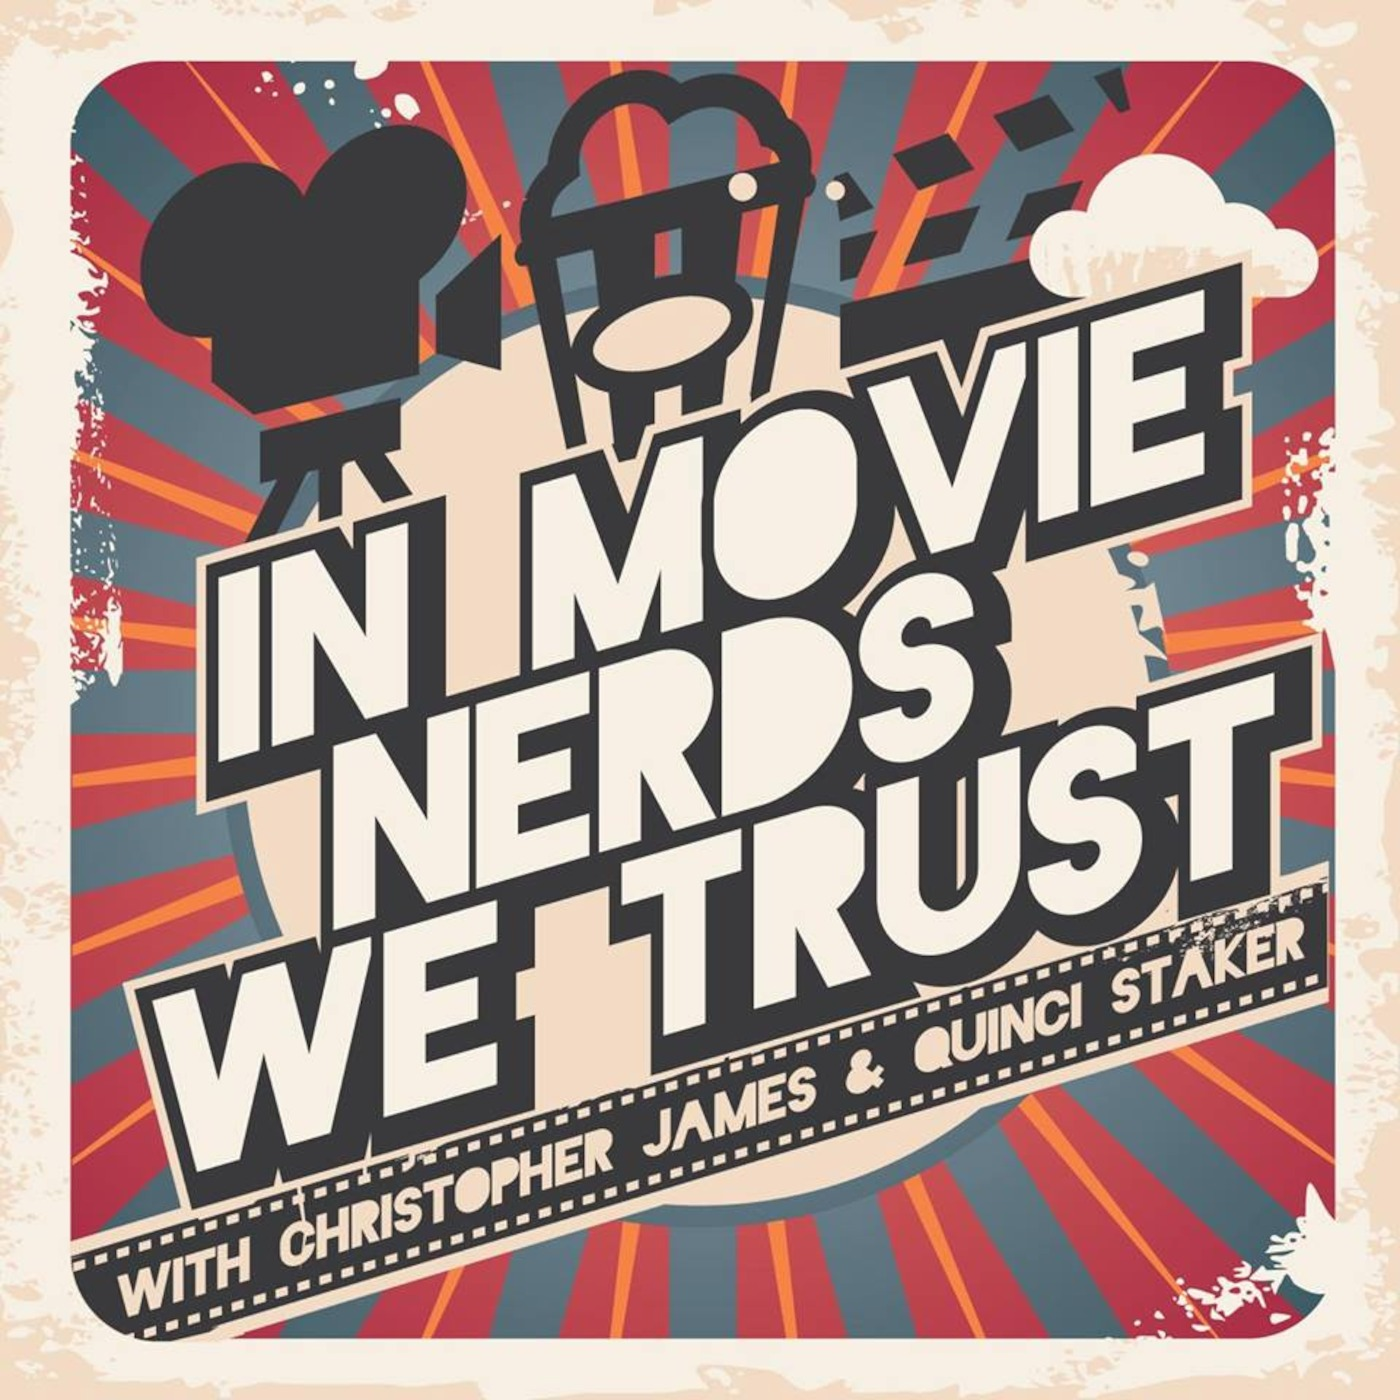 In Movie Nerds We Trust